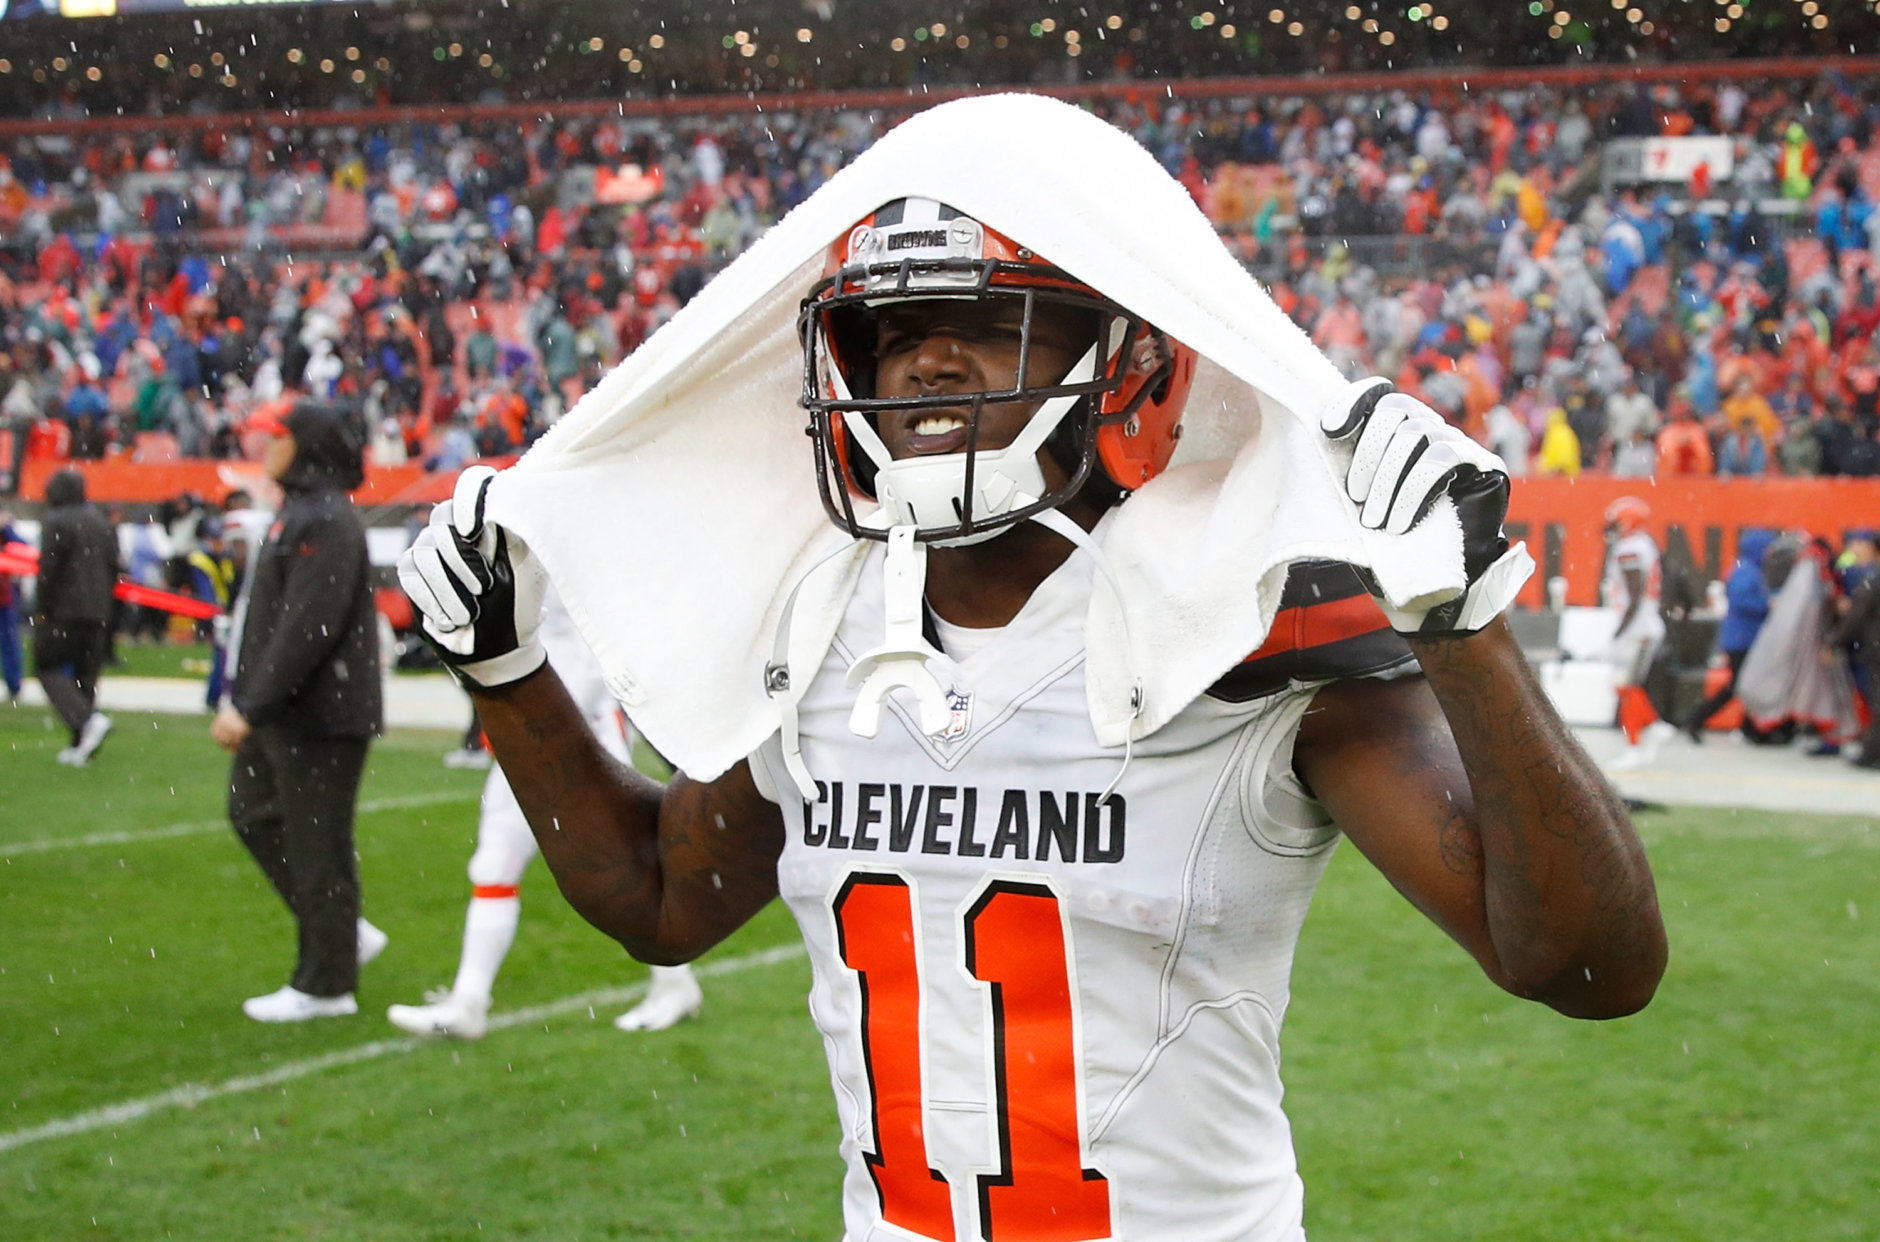 CLEVELAND, OH - SEPTEMBER 09:  Antonio Callaway #11 of the Cleveland Browns walks off the field after a 21-21 tie against the Pittsburgh Steelers at FirstEnergy Stadium on September 9, 2018 in Cleveland, Ohio. (Photo by Joe Robbins/Getty Images)